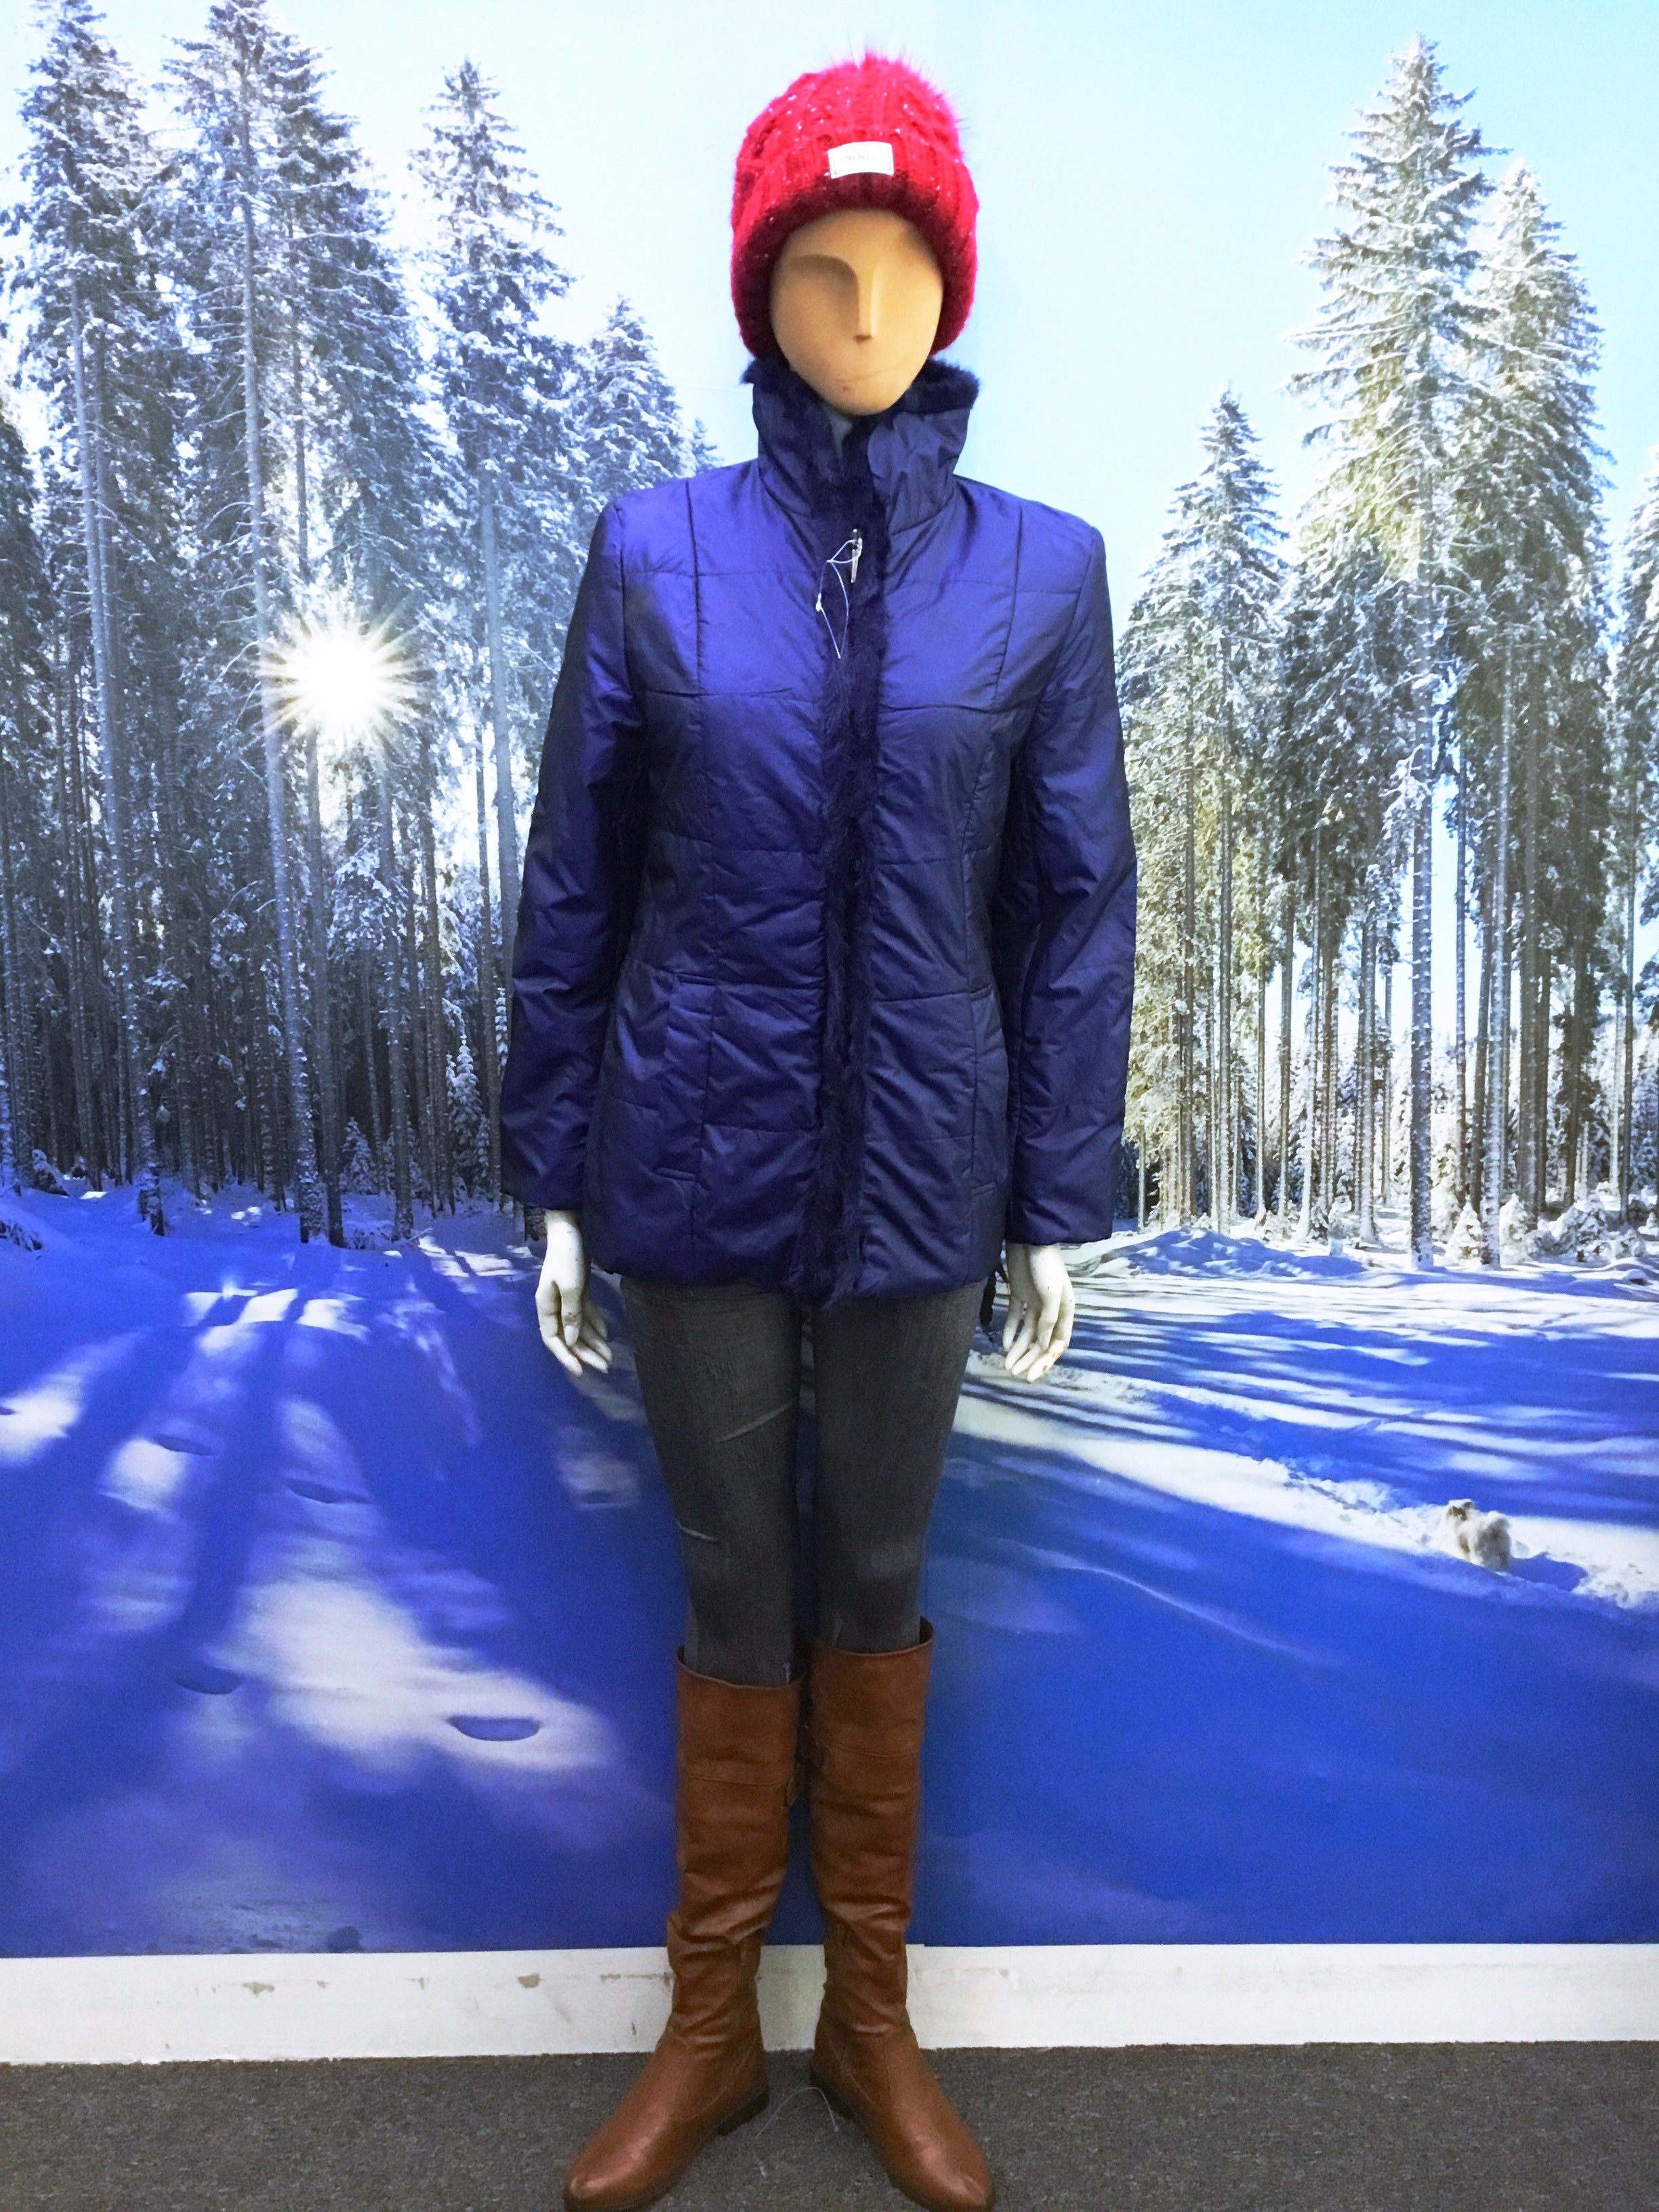 BP4720 H&C WINTER JACKET